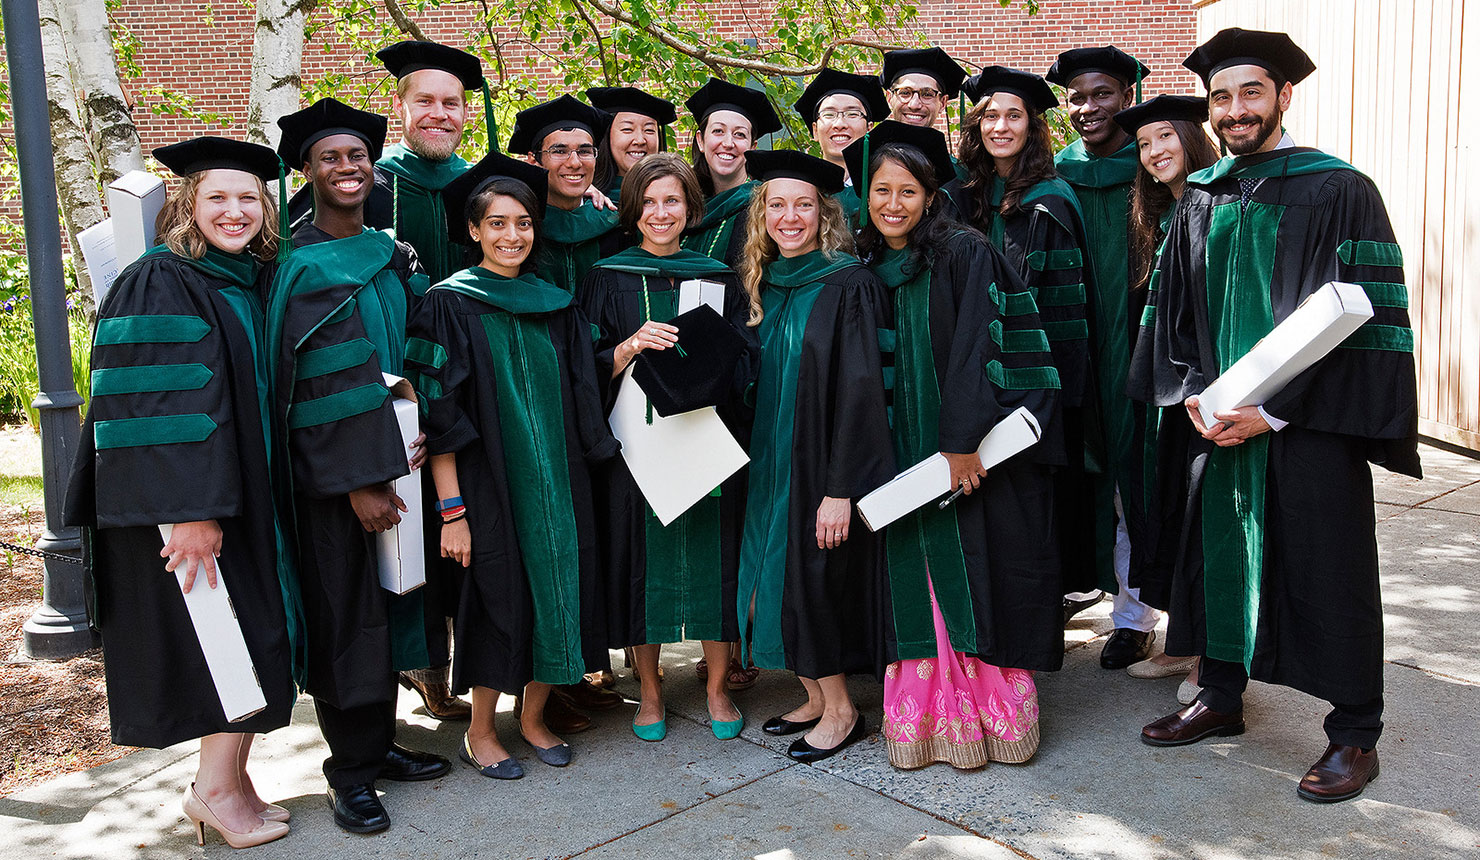 Some of the new Geisel grads celebrate after a memorable Class Day. (photo by Flying Squirrel)